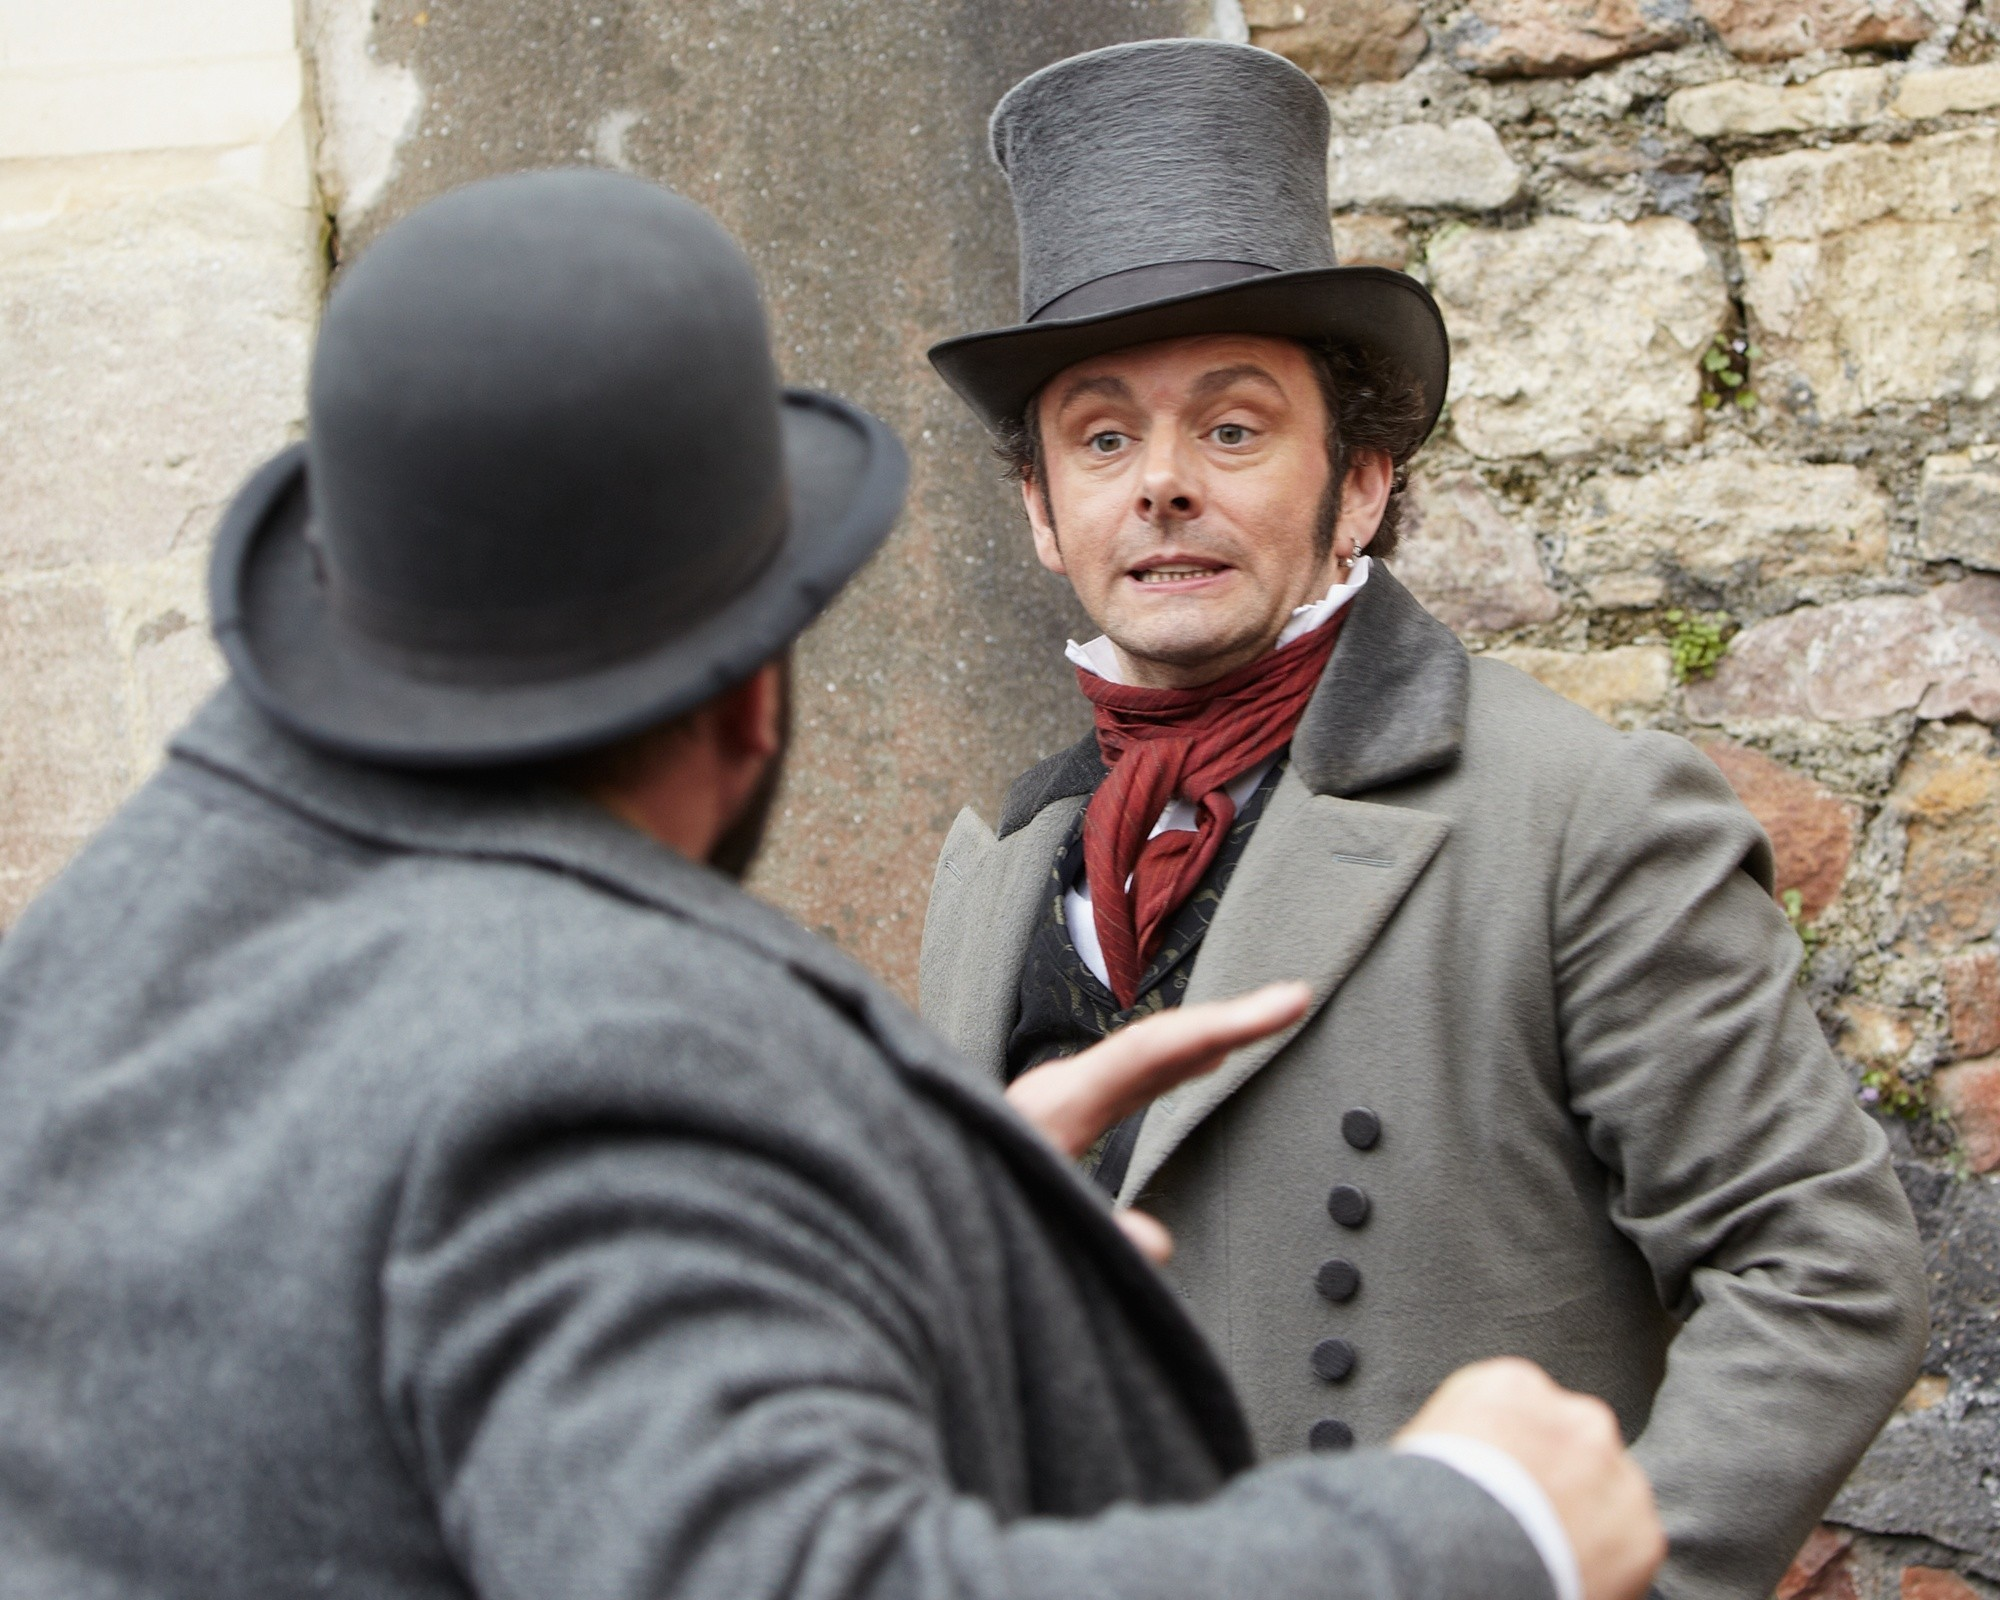 Michael Sheen stars as Charity in Image Entertainment's The Adventurer: The Curse of the Midas Box (2014)